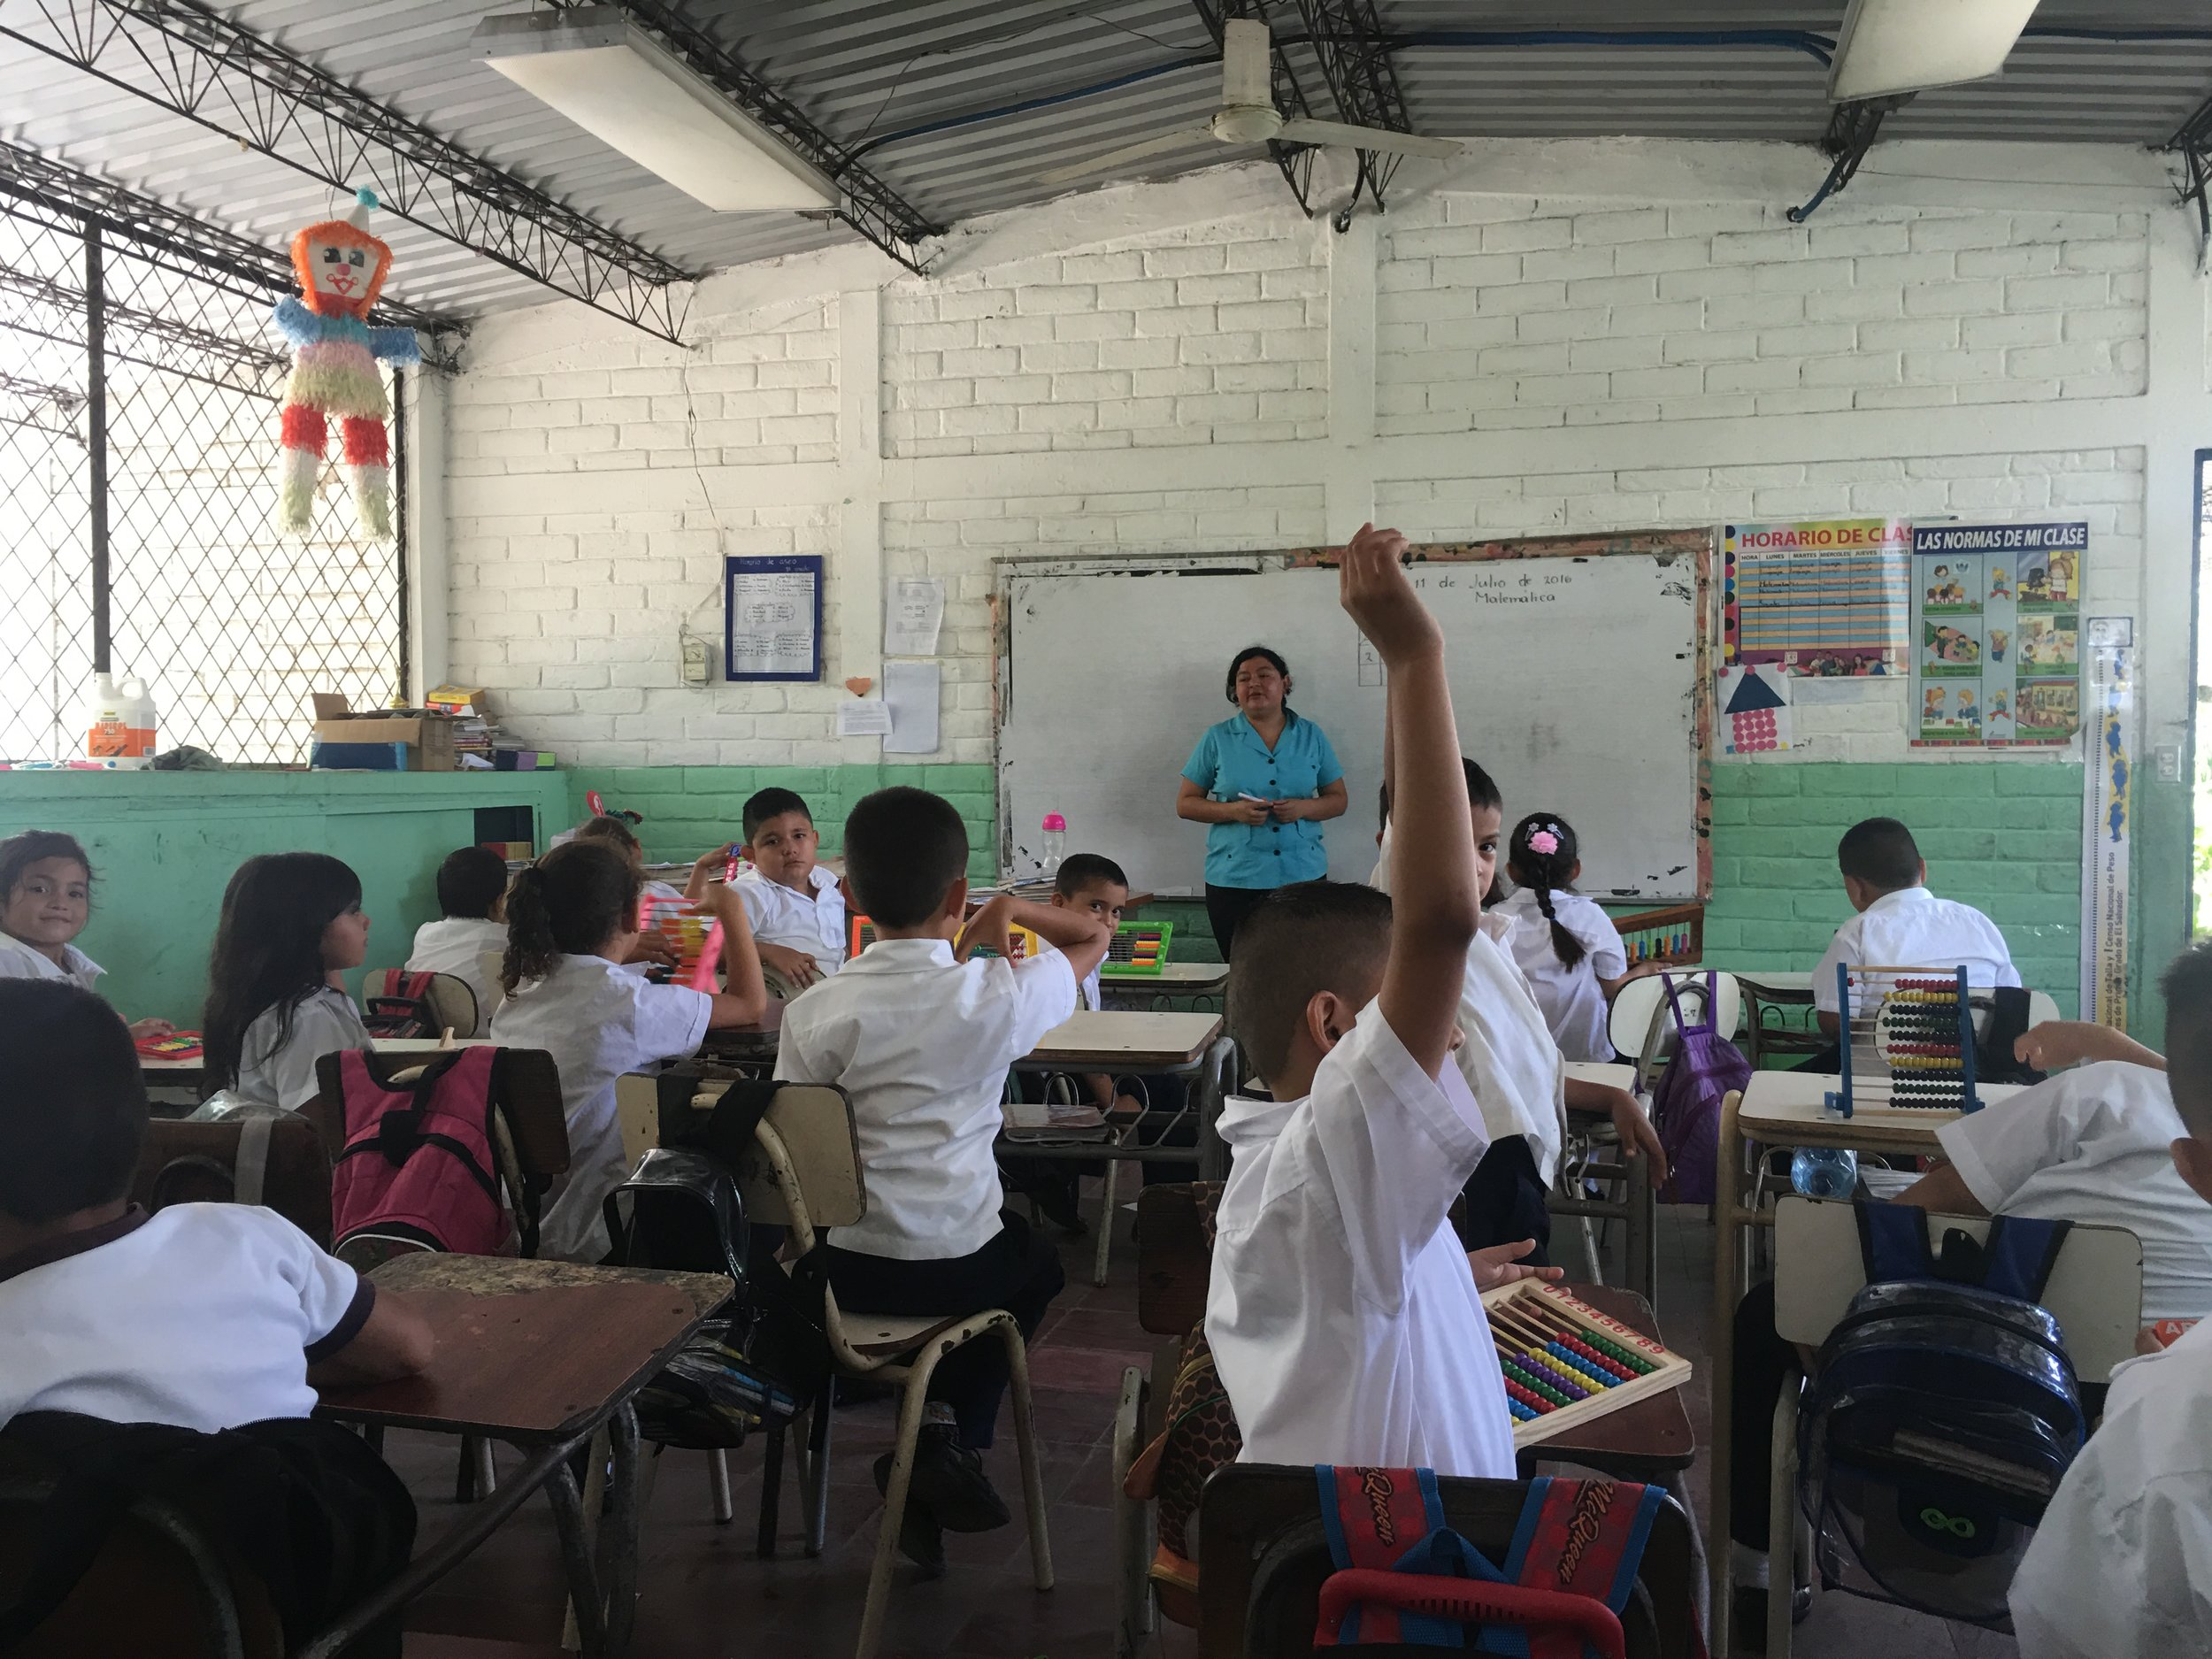 Magdalena teaches math to elementary students and English to junior high and high school students. Our team is equipping her through conferences and a publication in Spanish with practical tools to better serve students and their families.